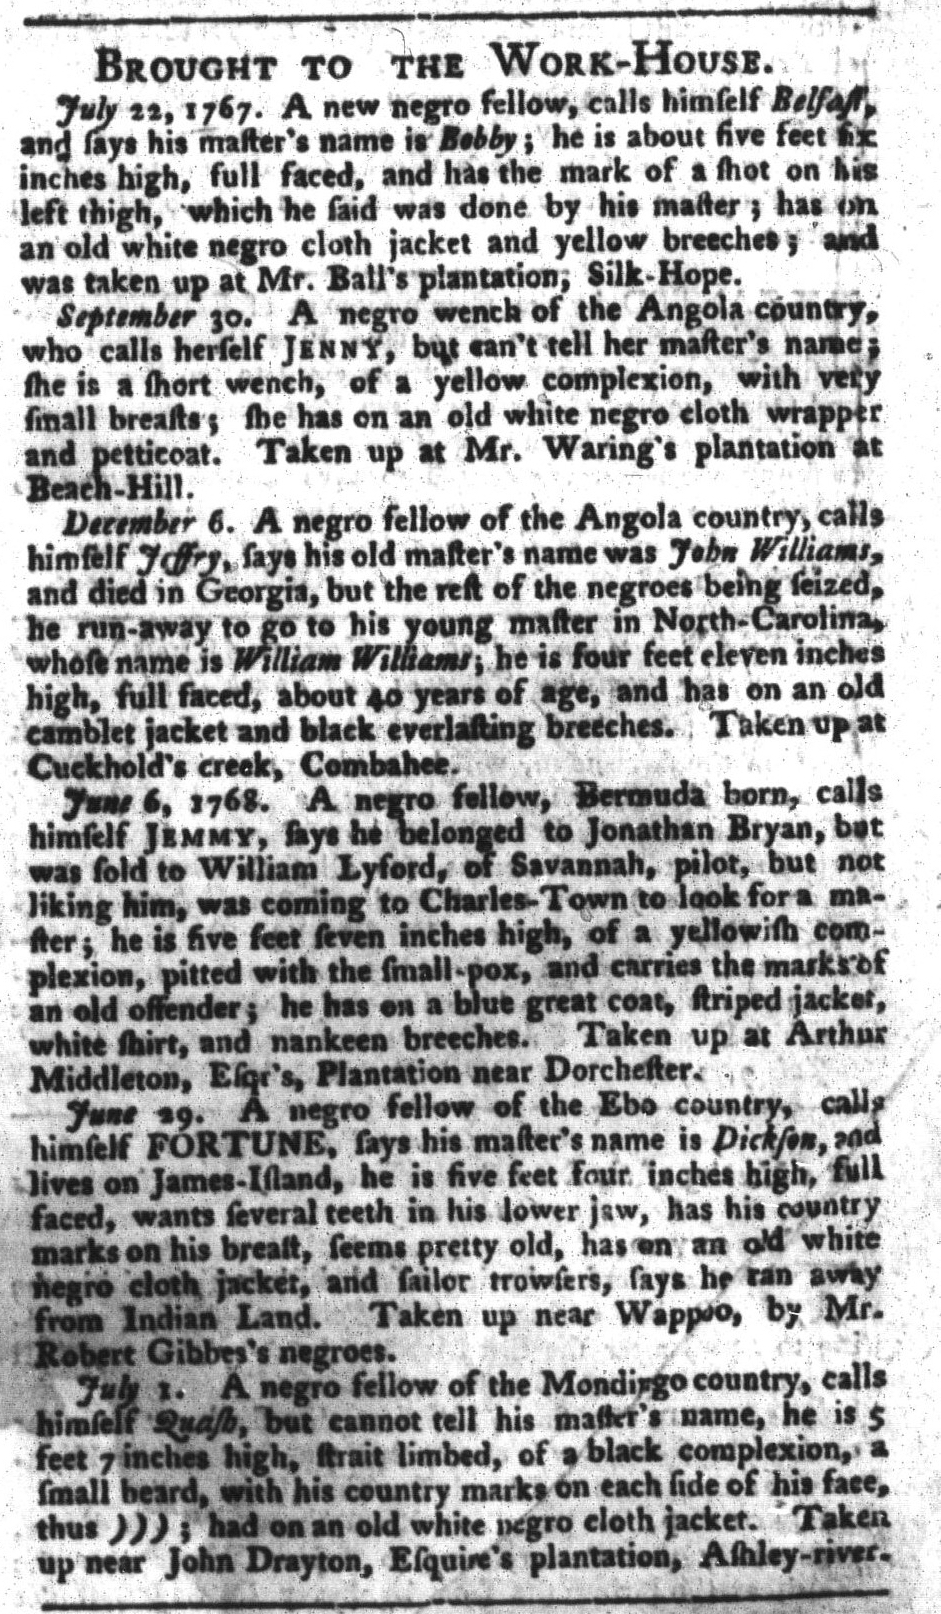 Jul 12 - South-Carolina Gazette and Country Journal Slavery 12